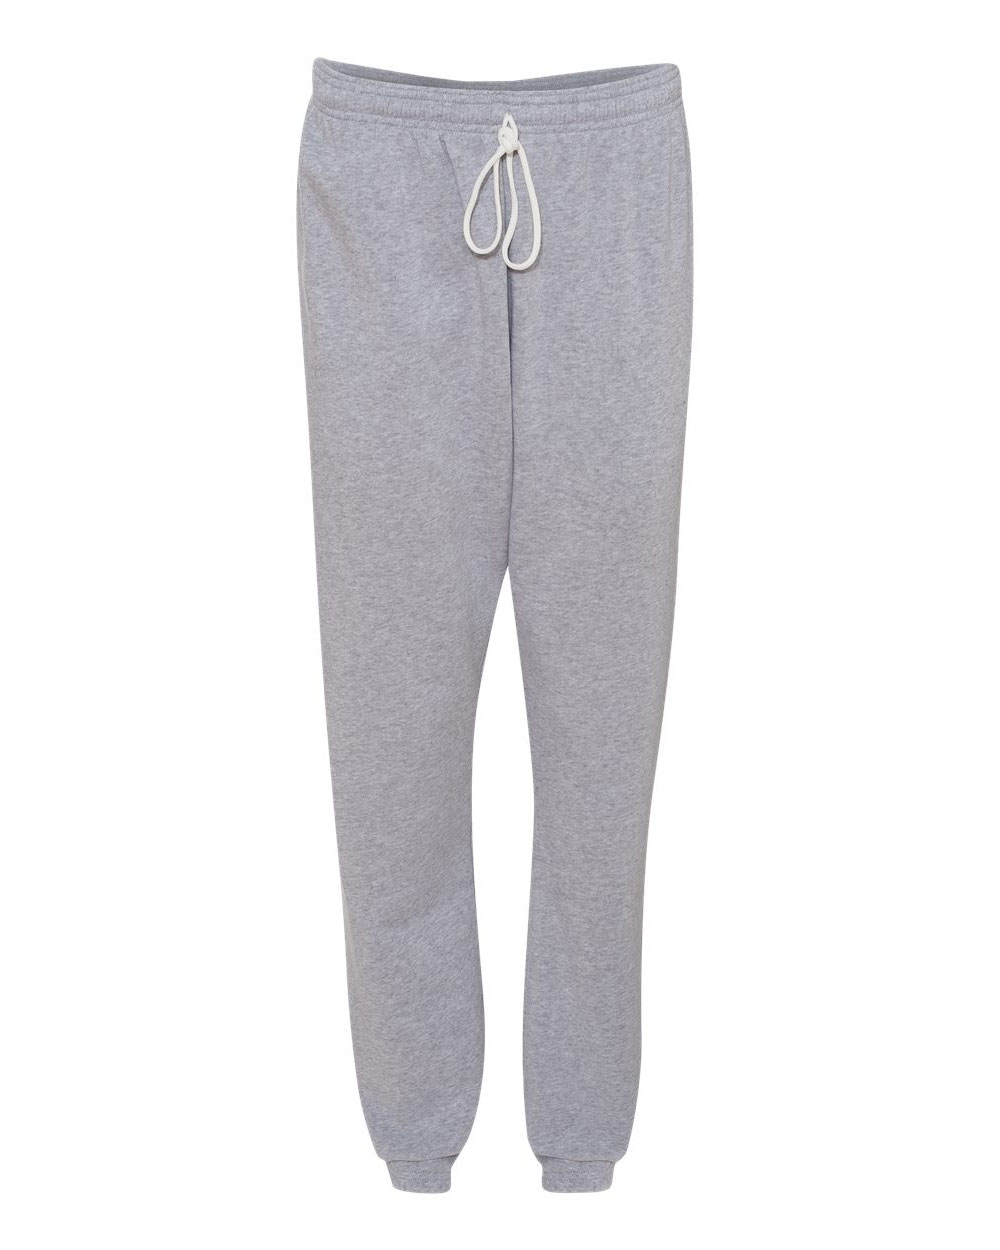 Bella + Canvas Unisex Sponge Fleece Long Scrunch Pants